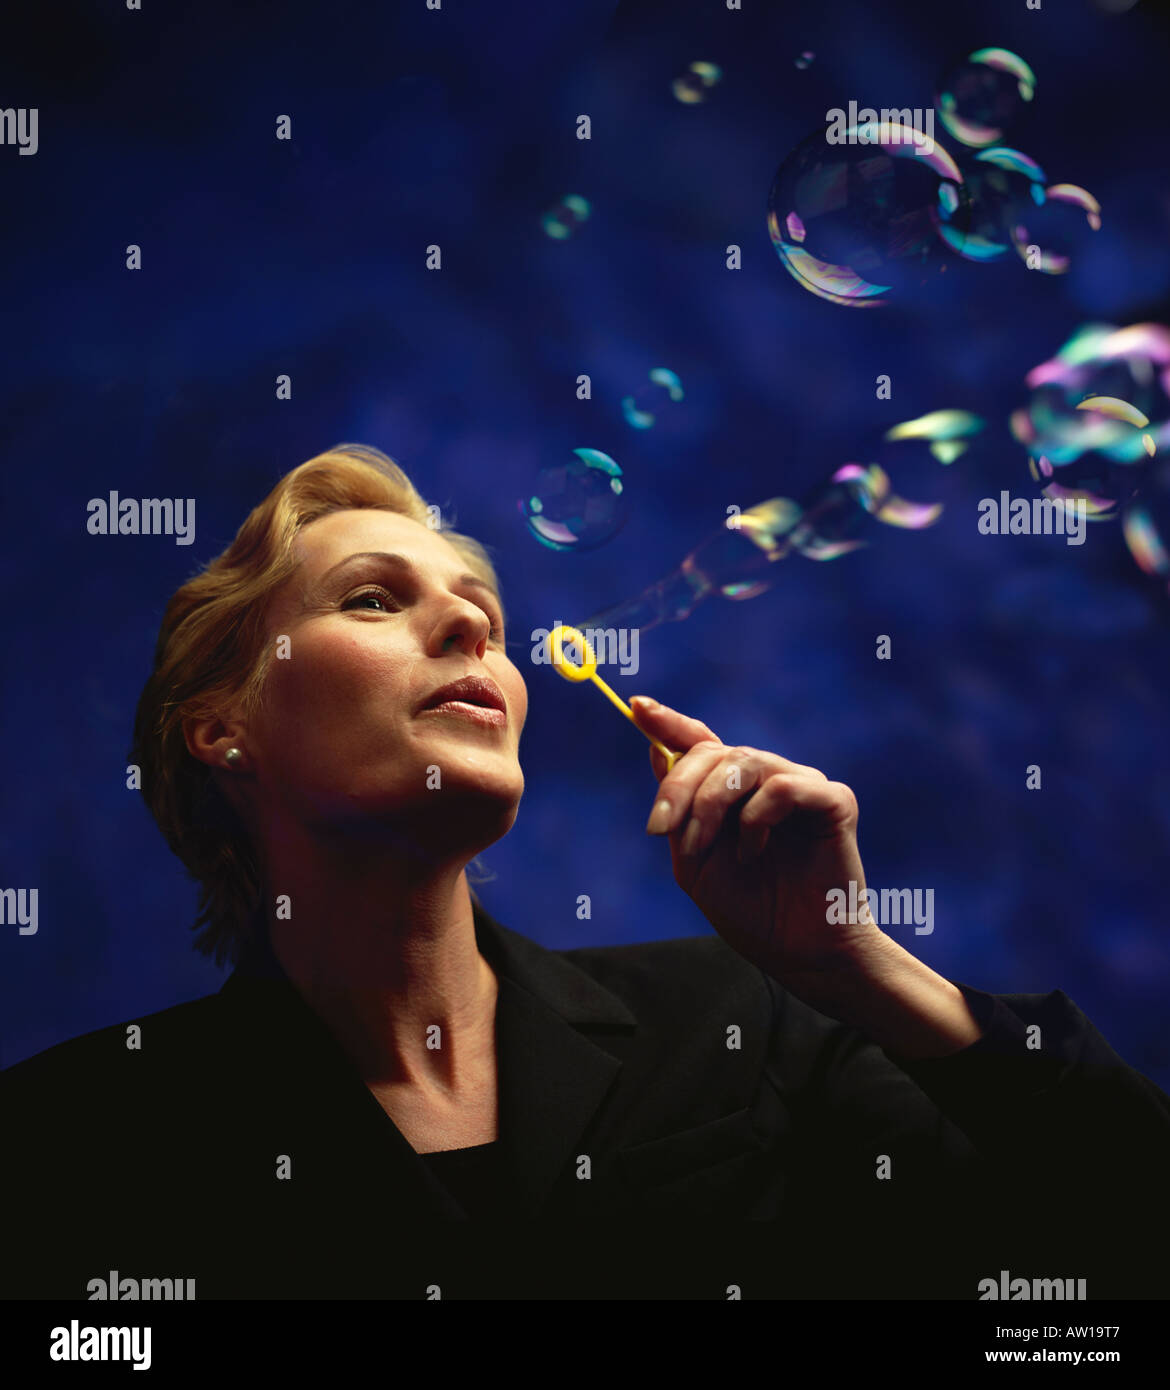 Business Woman Blowing Bubbles Stock Photo